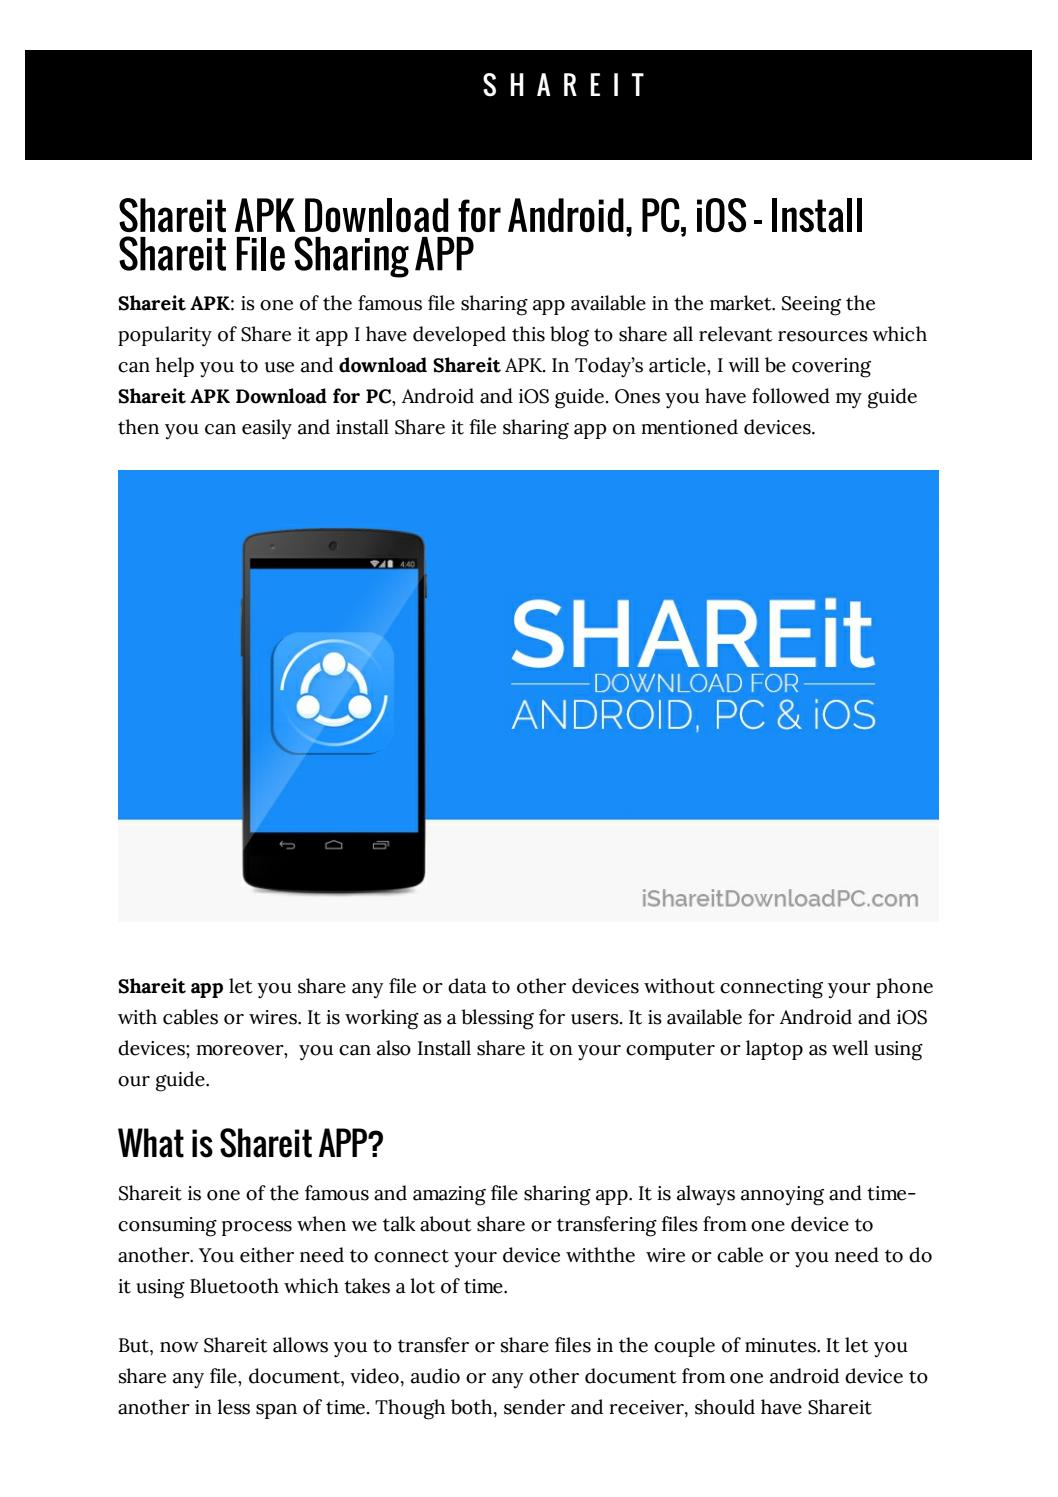 shareit app free download for pc